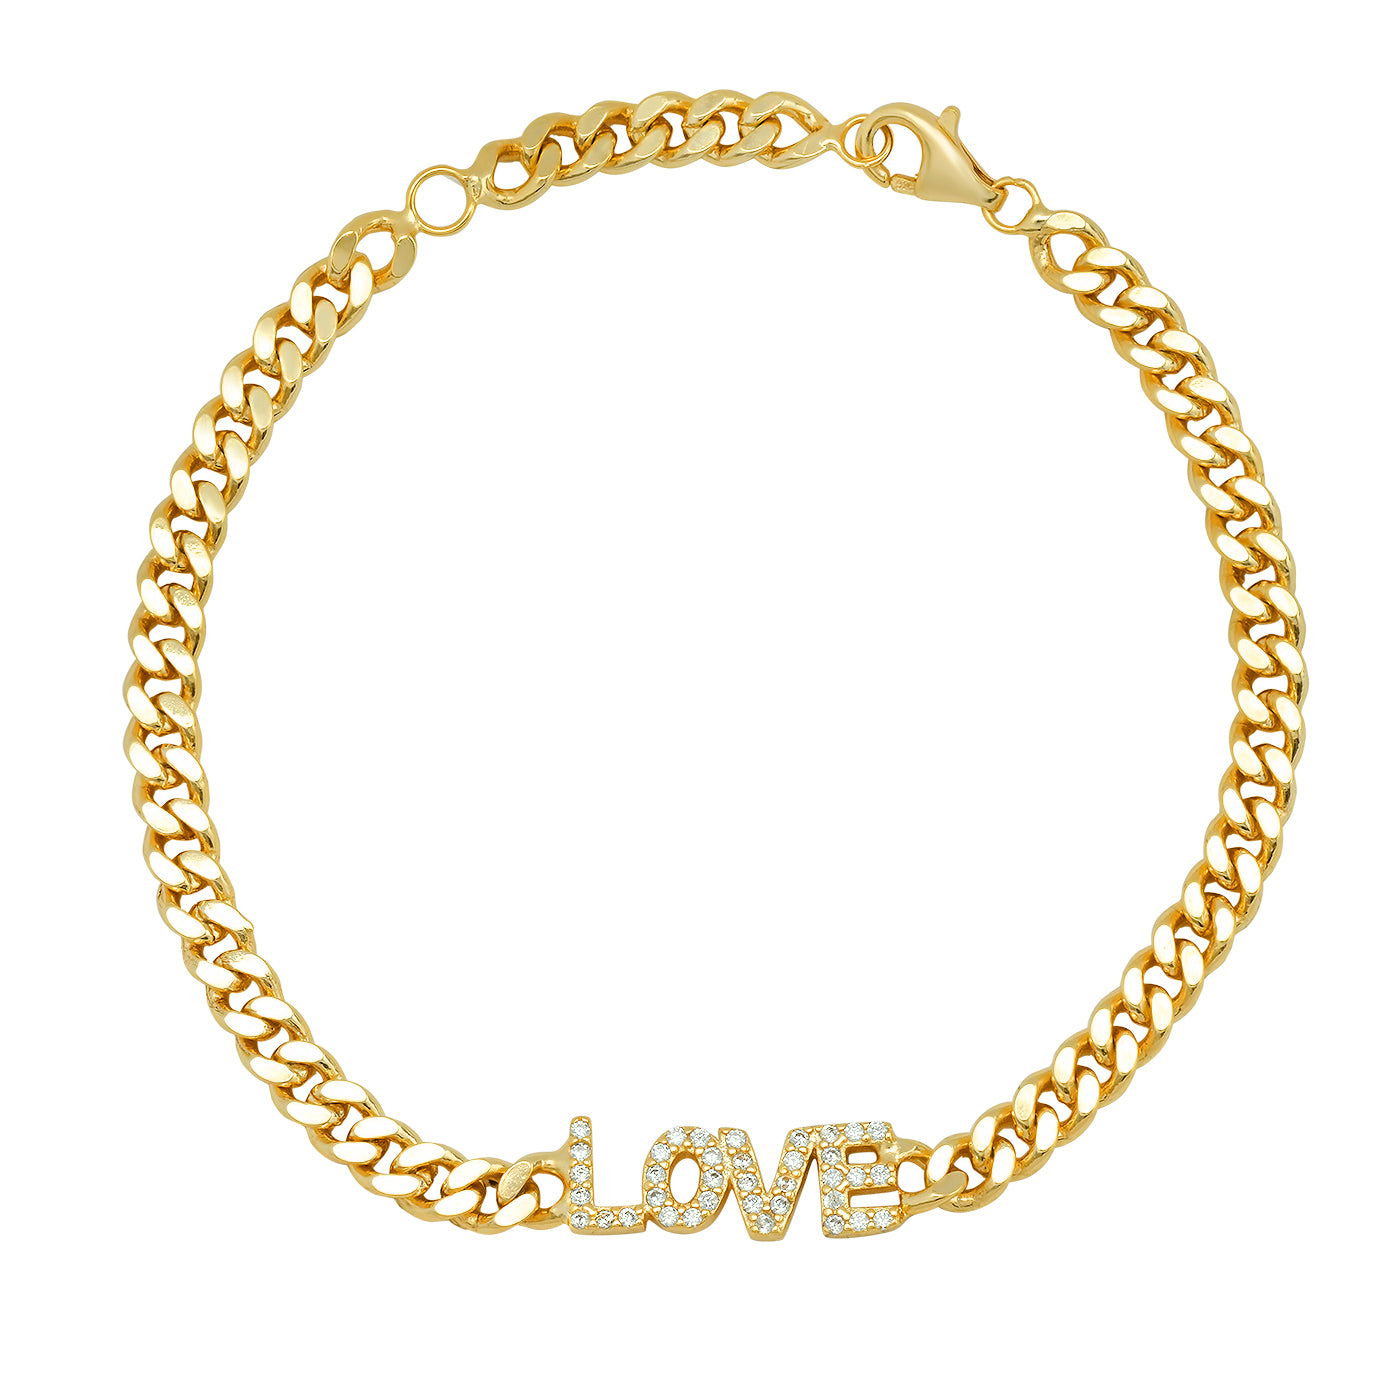 The Link Love Chain Bracelet in Gold